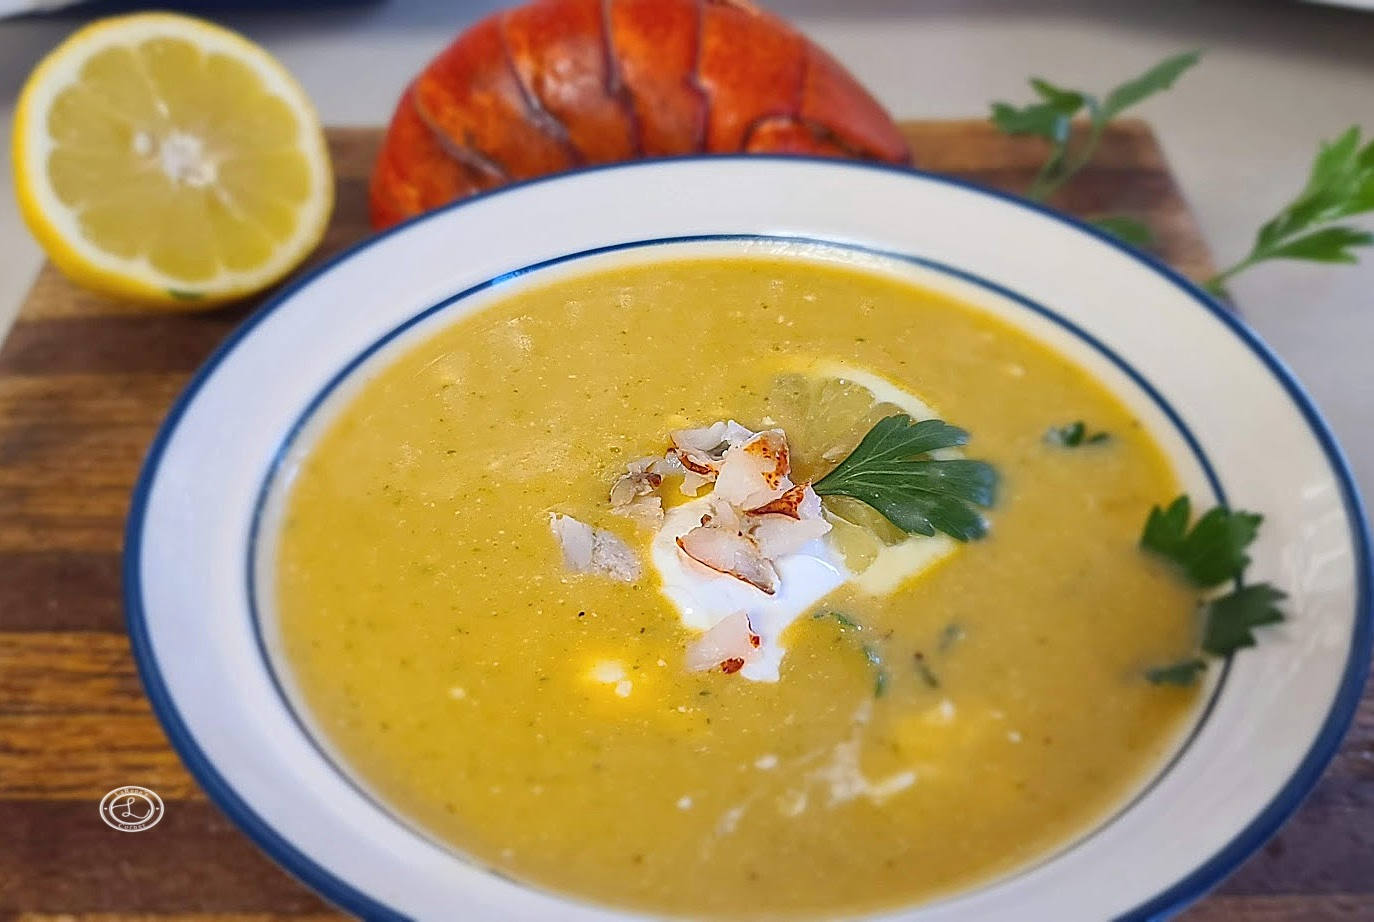 A bowl of soup with a half a lemon and lobster shell in the background.